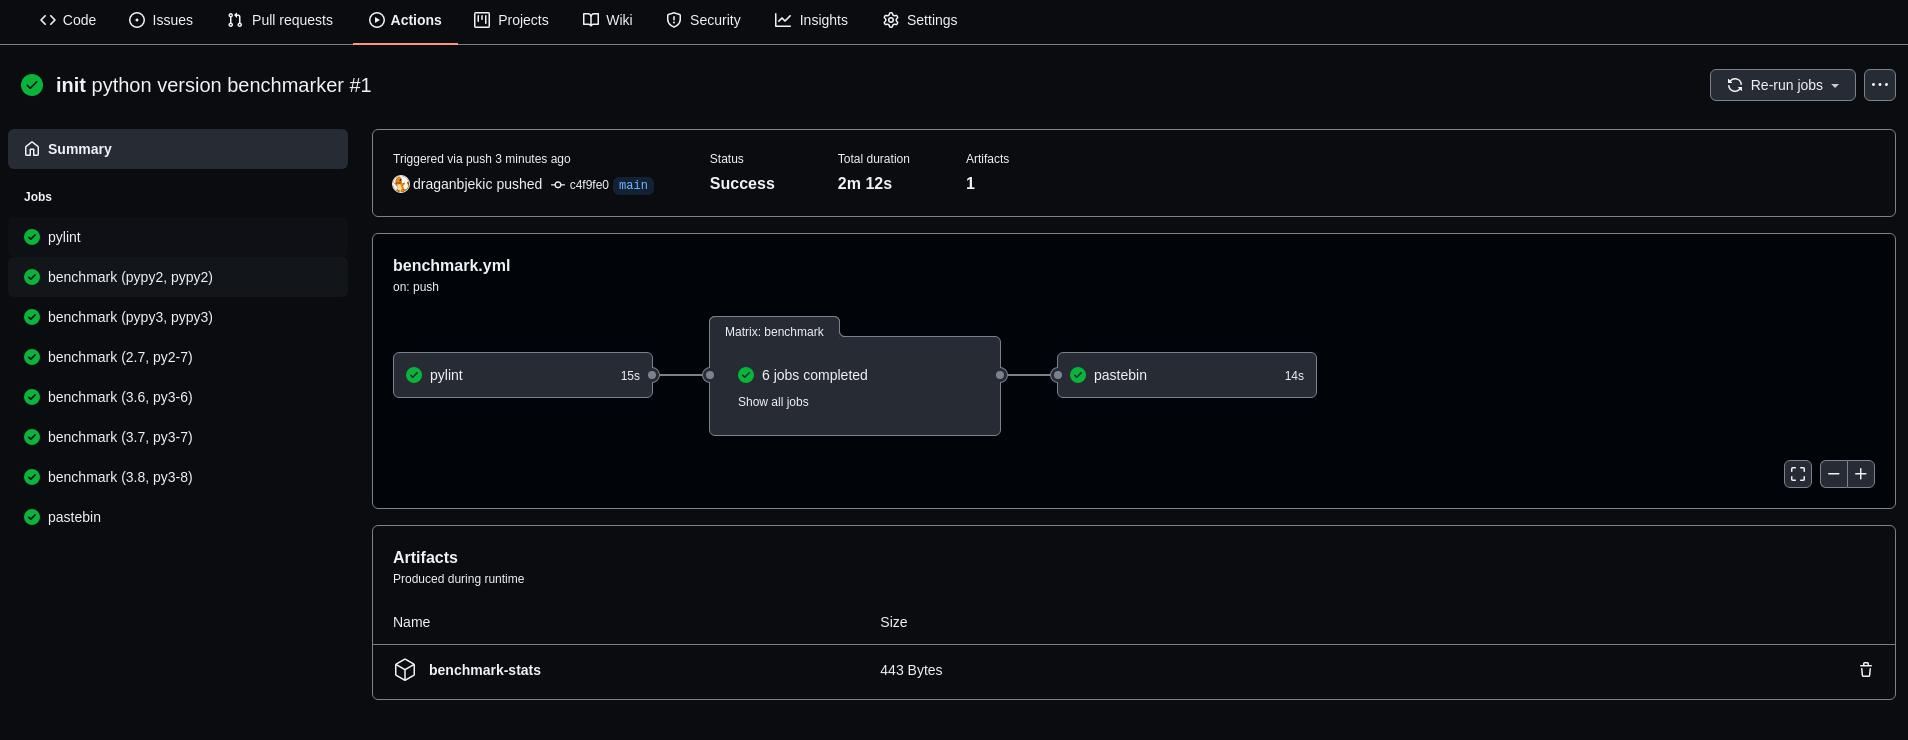 Workflow overview screen